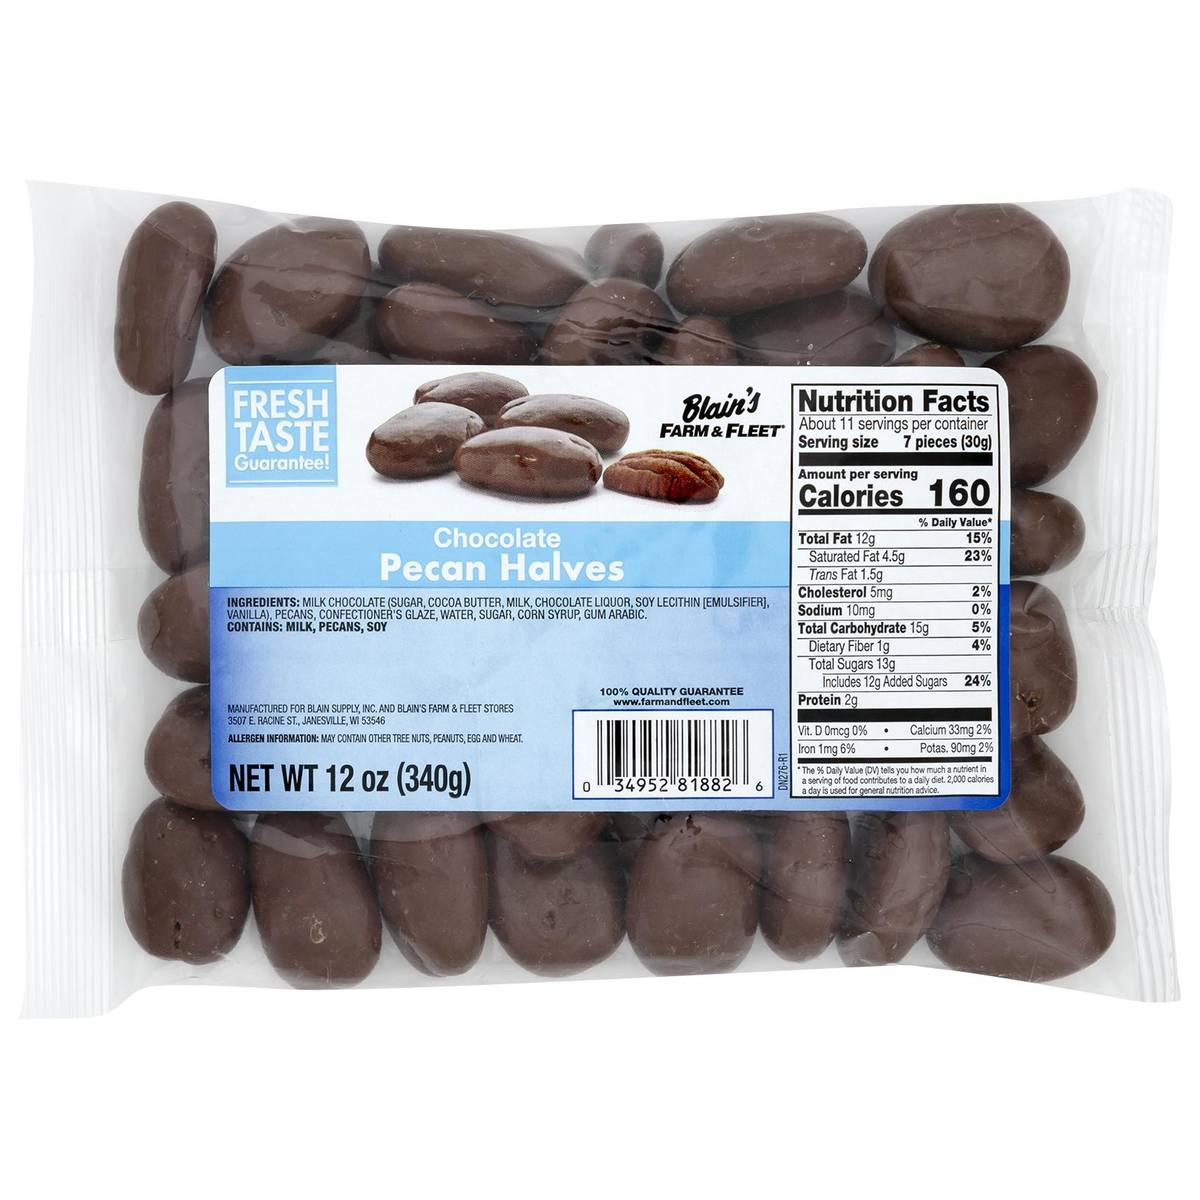 Dining Share This Farm Fleet Chocolate Covered Pecans Farm Fleet Janesville Wi Opening Farm Fleet Janesville Wi Auto houzz-03 Farm And Fleet Janesville Wi